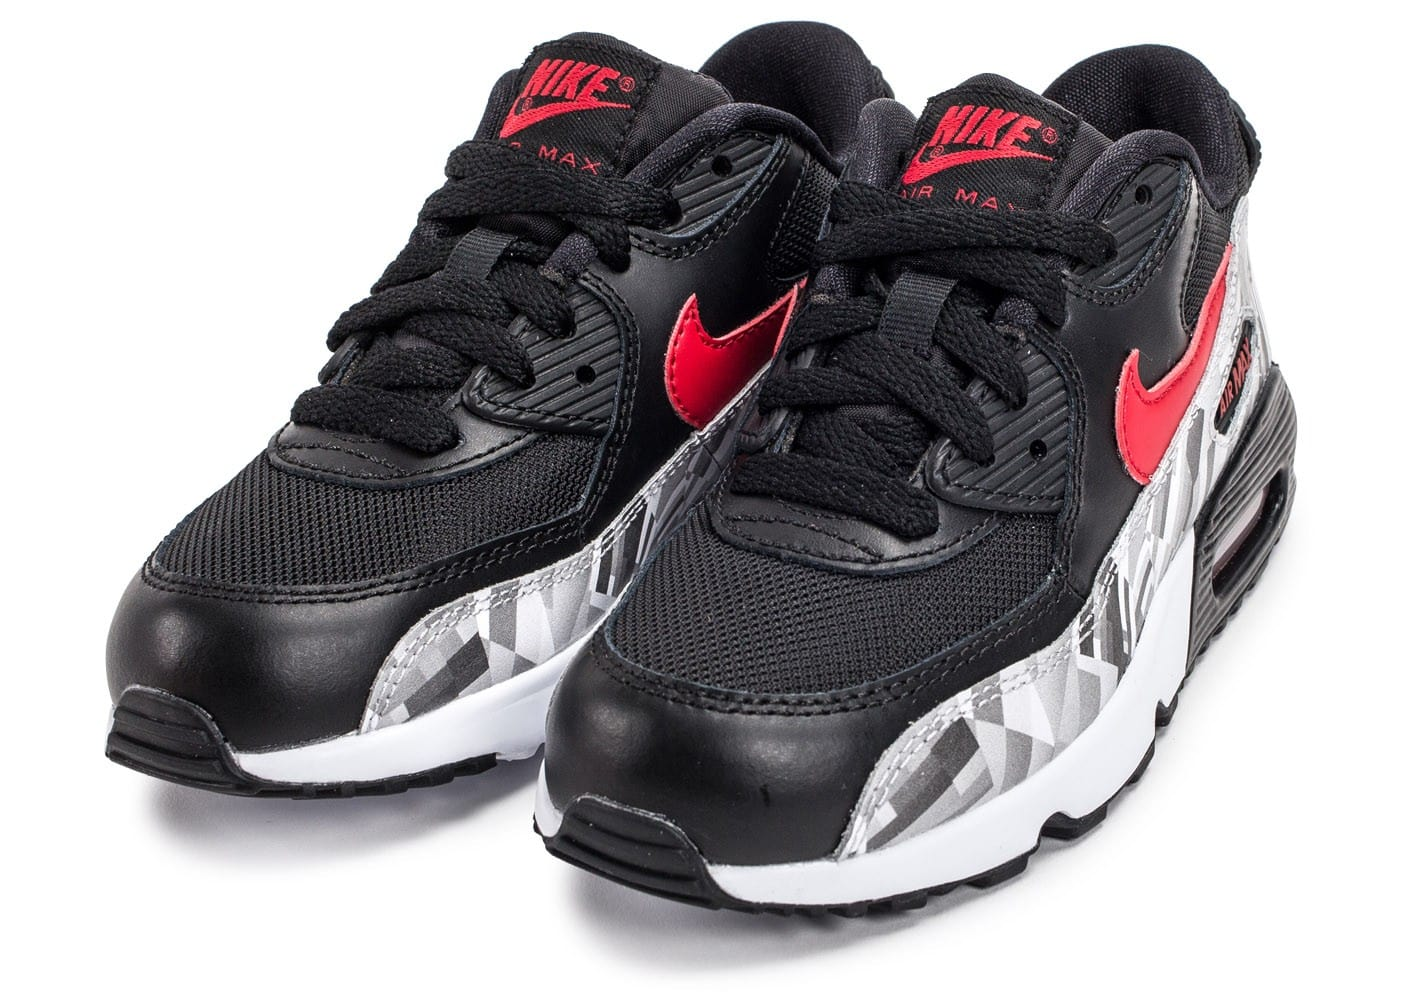 nike air max 90 mesh enfant noir et rouge chaussures enfant chausport. Black Bedroom Furniture Sets. Home Design Ideas